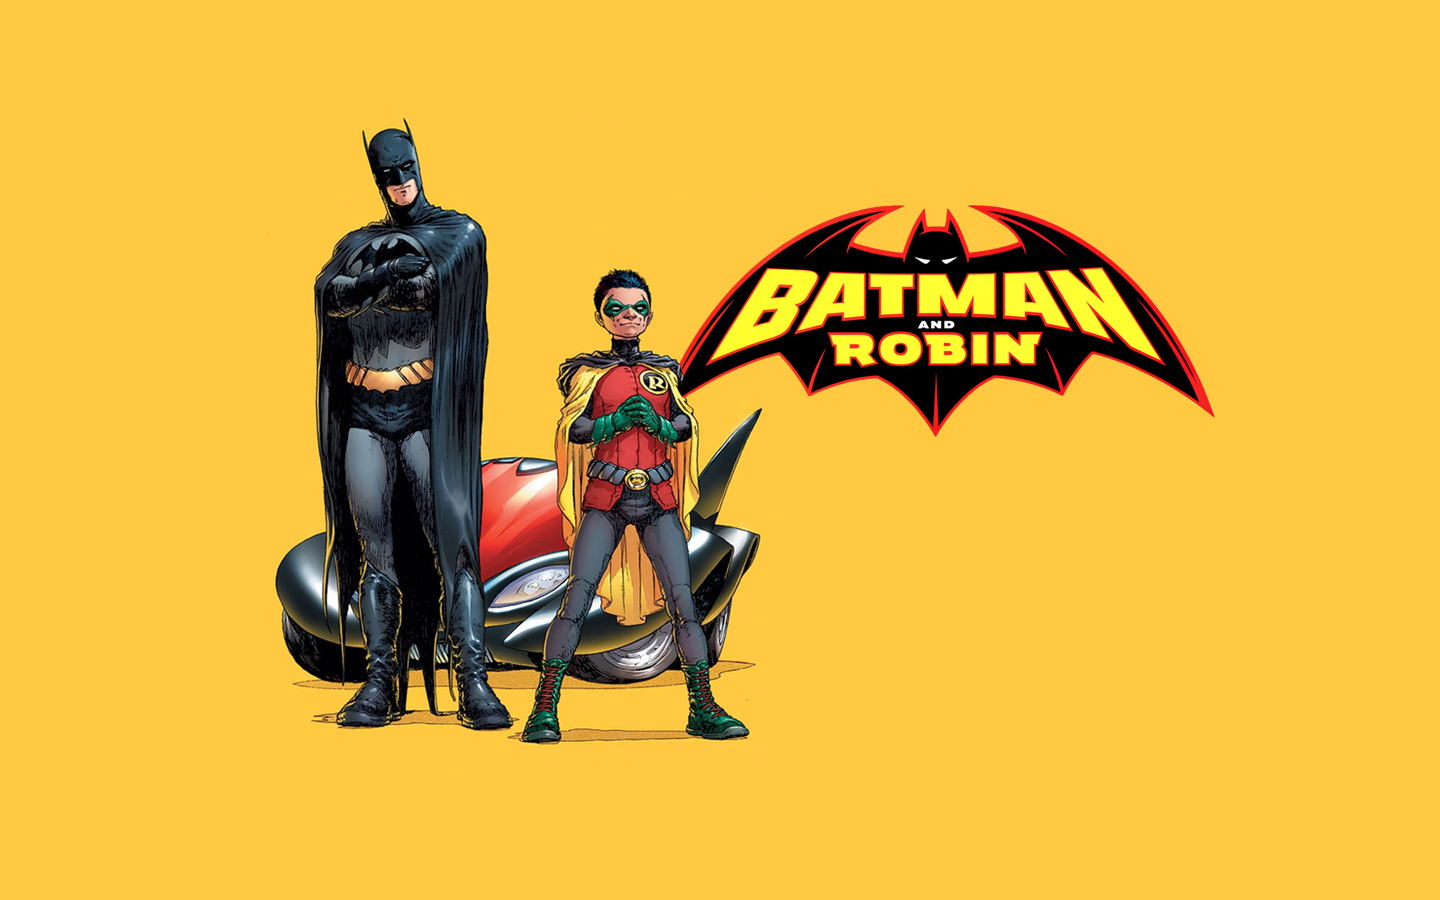 1440x900 > Batman & Robin Wallpapers